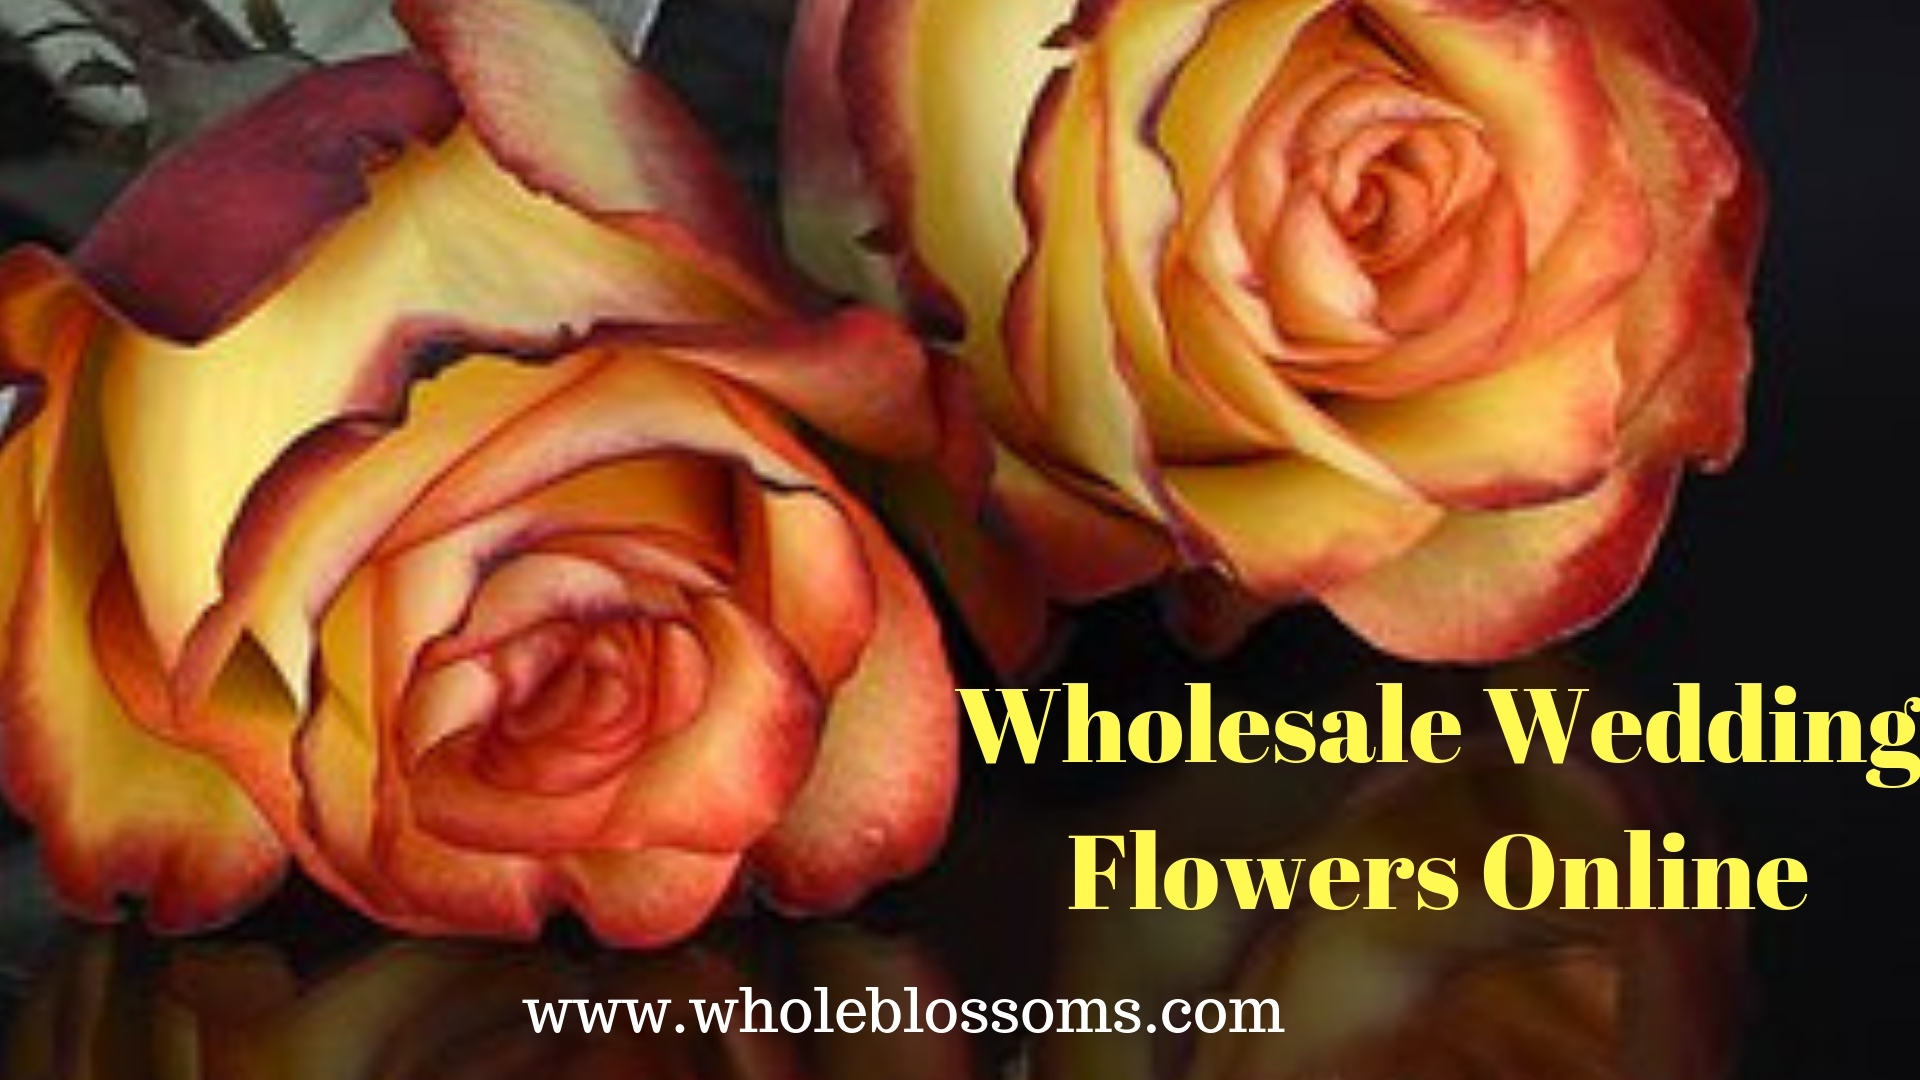 Buy Wholesale & Beautiful Wedding Flowers Online